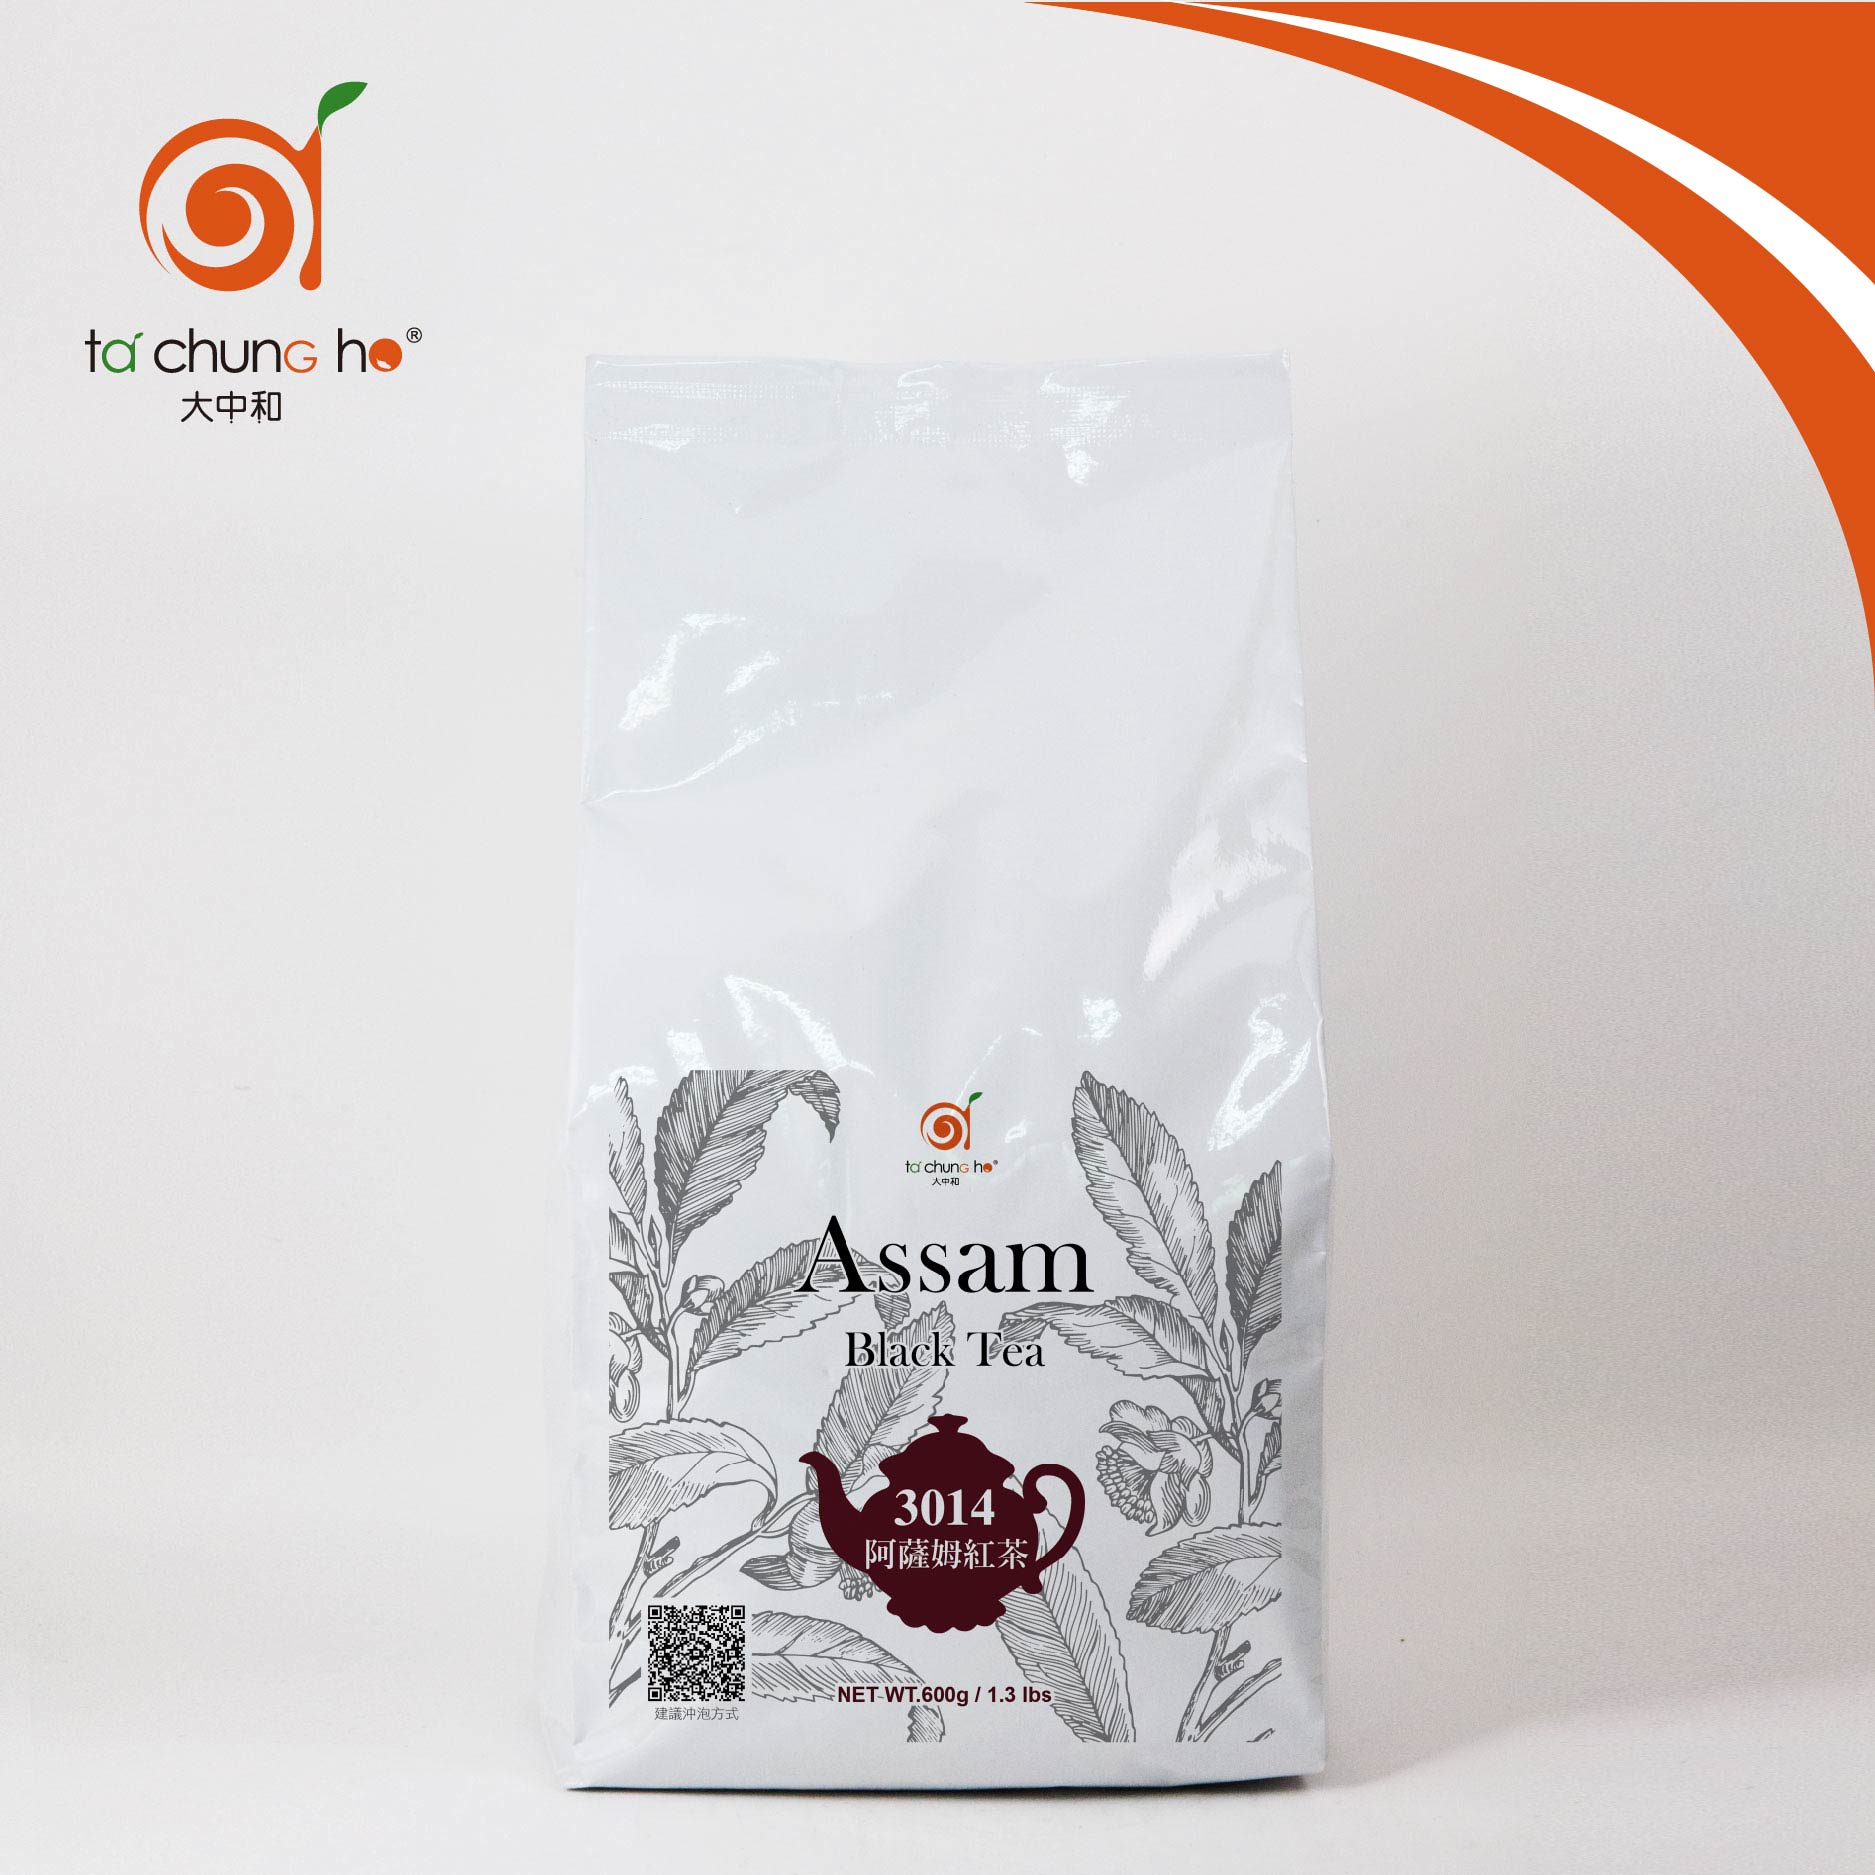 3014Taiwan Assam Black Tea suppliers for TachunGhO